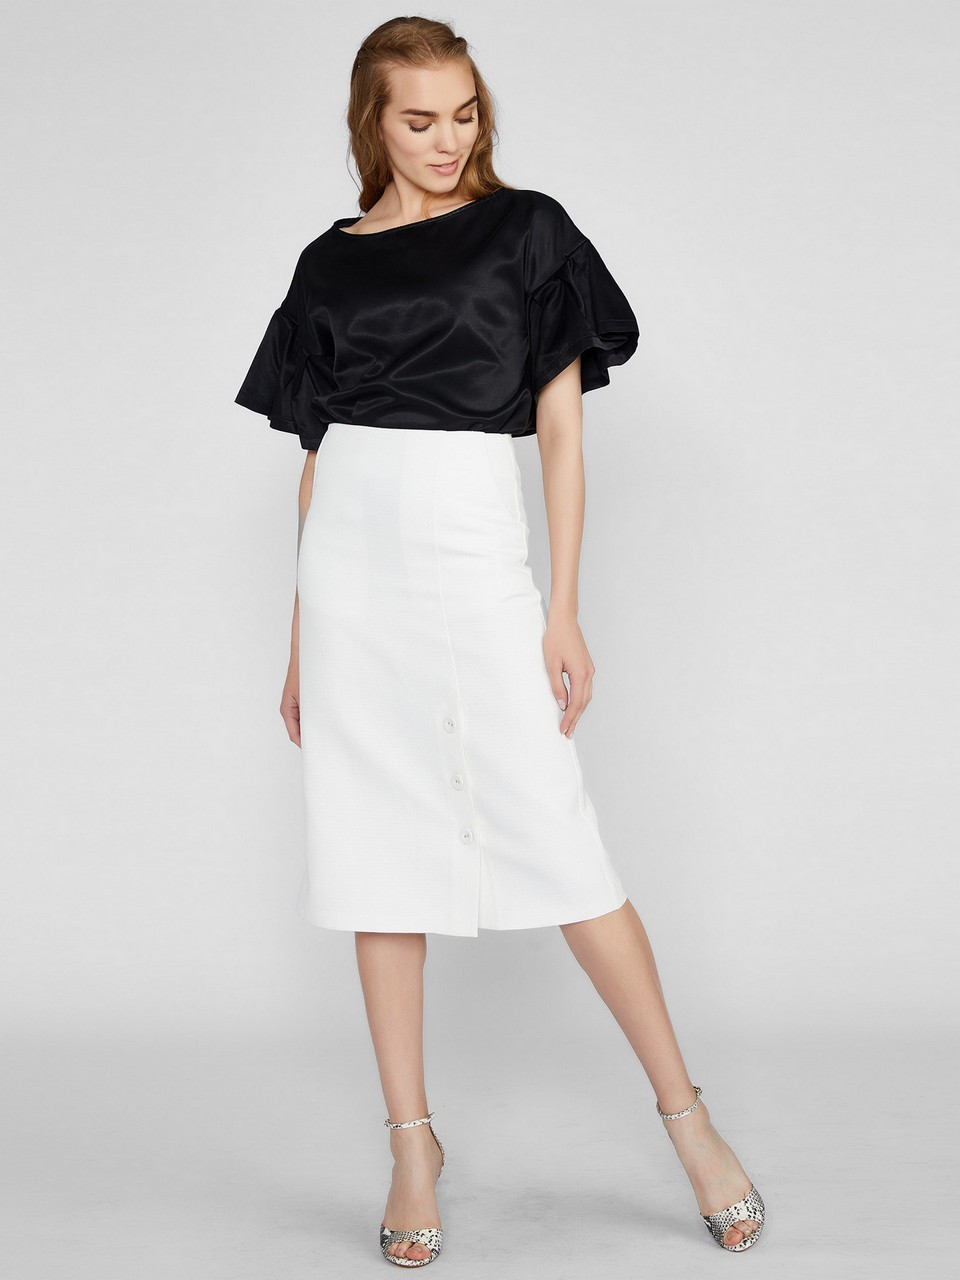 Midi Size Skirt With Front Button Details